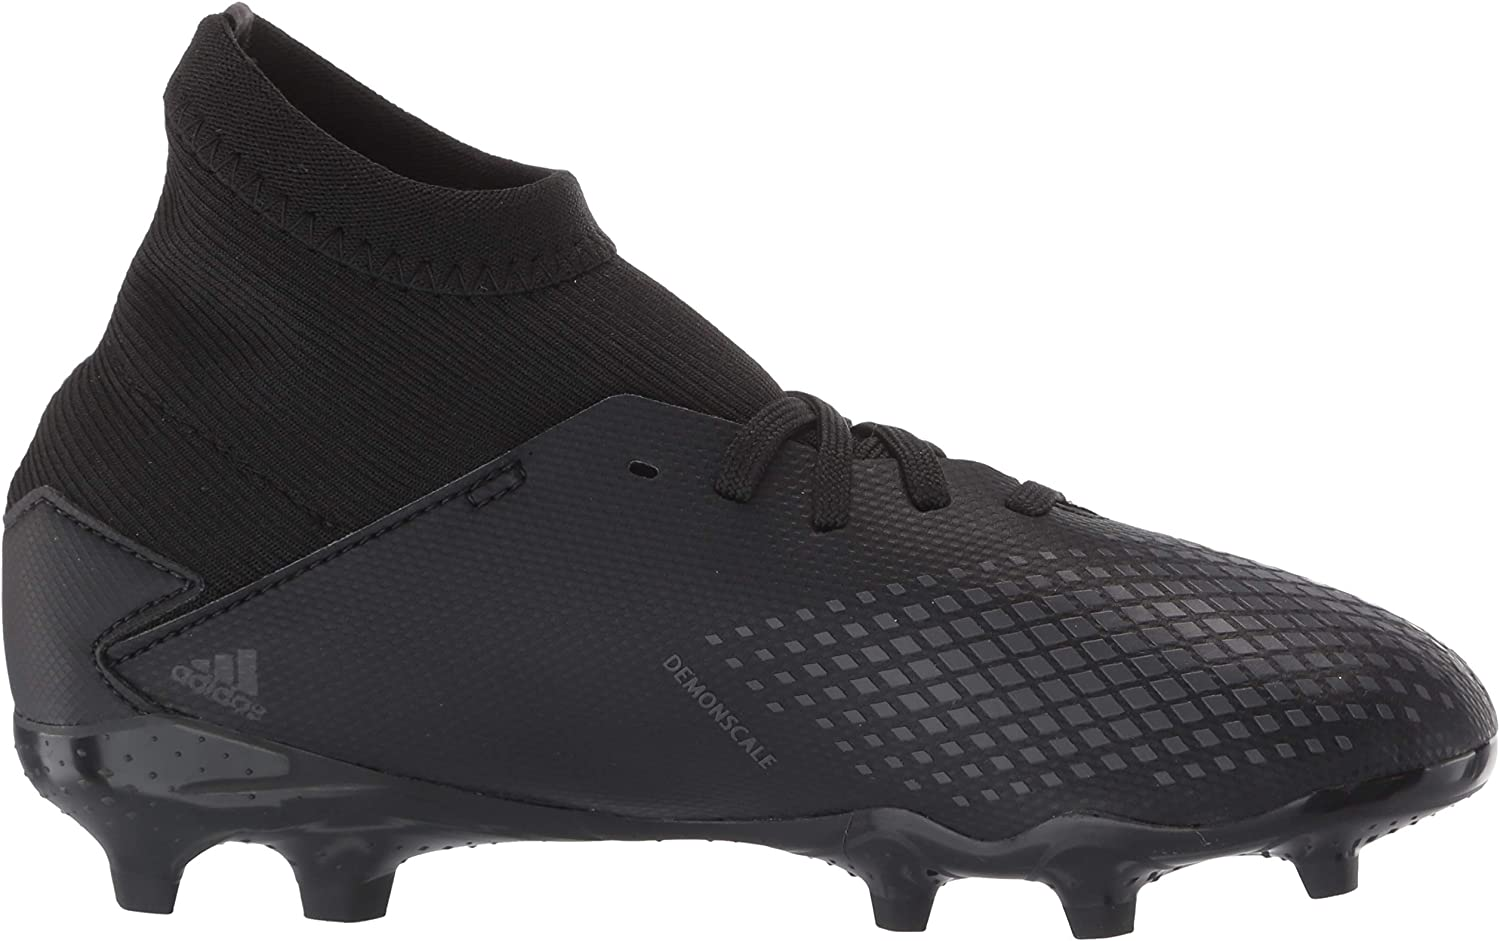 adidas Men's Predator 20.3 Firm Ground Sneaker Core Black/Core Black/Dgh Solid Grey